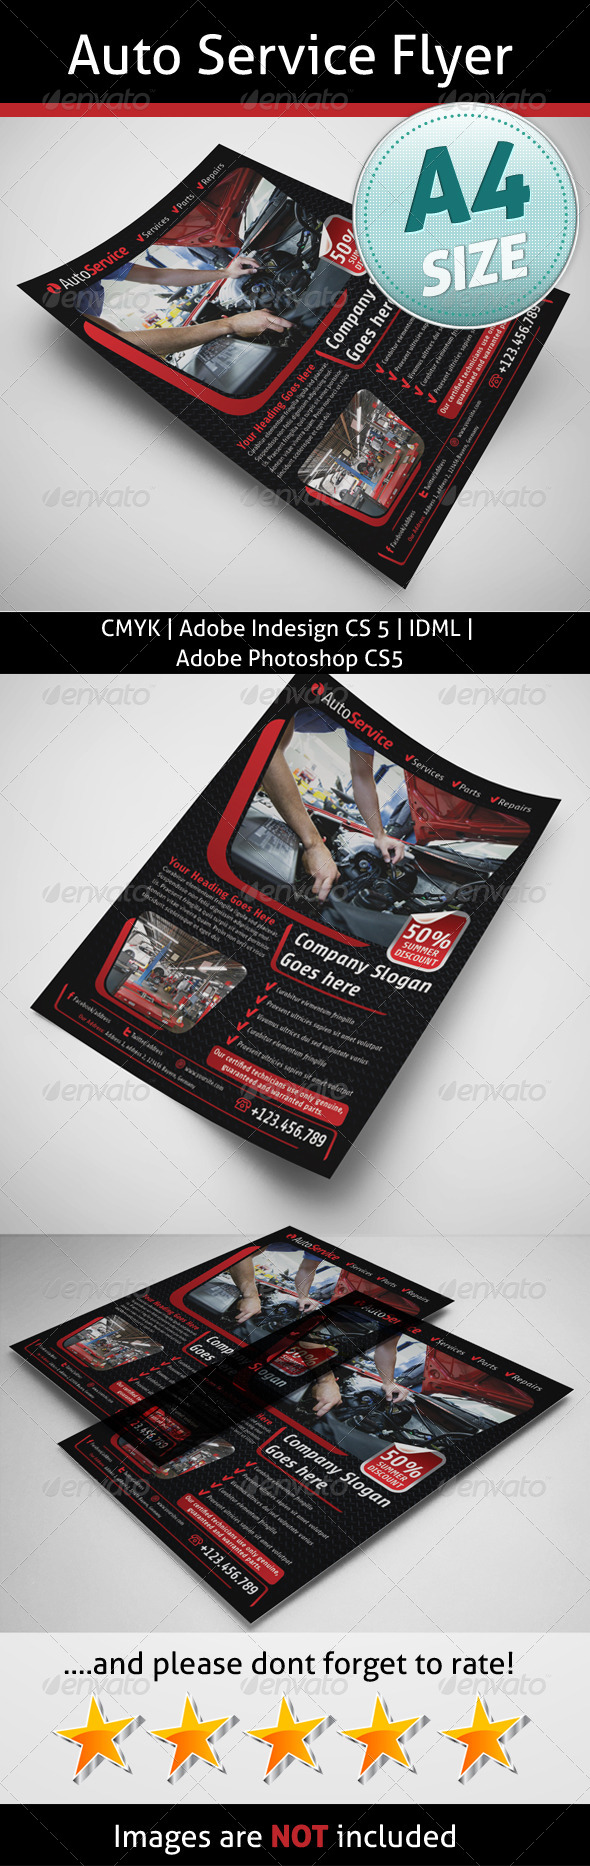 Auto Service Flyer - Corporate Flyers